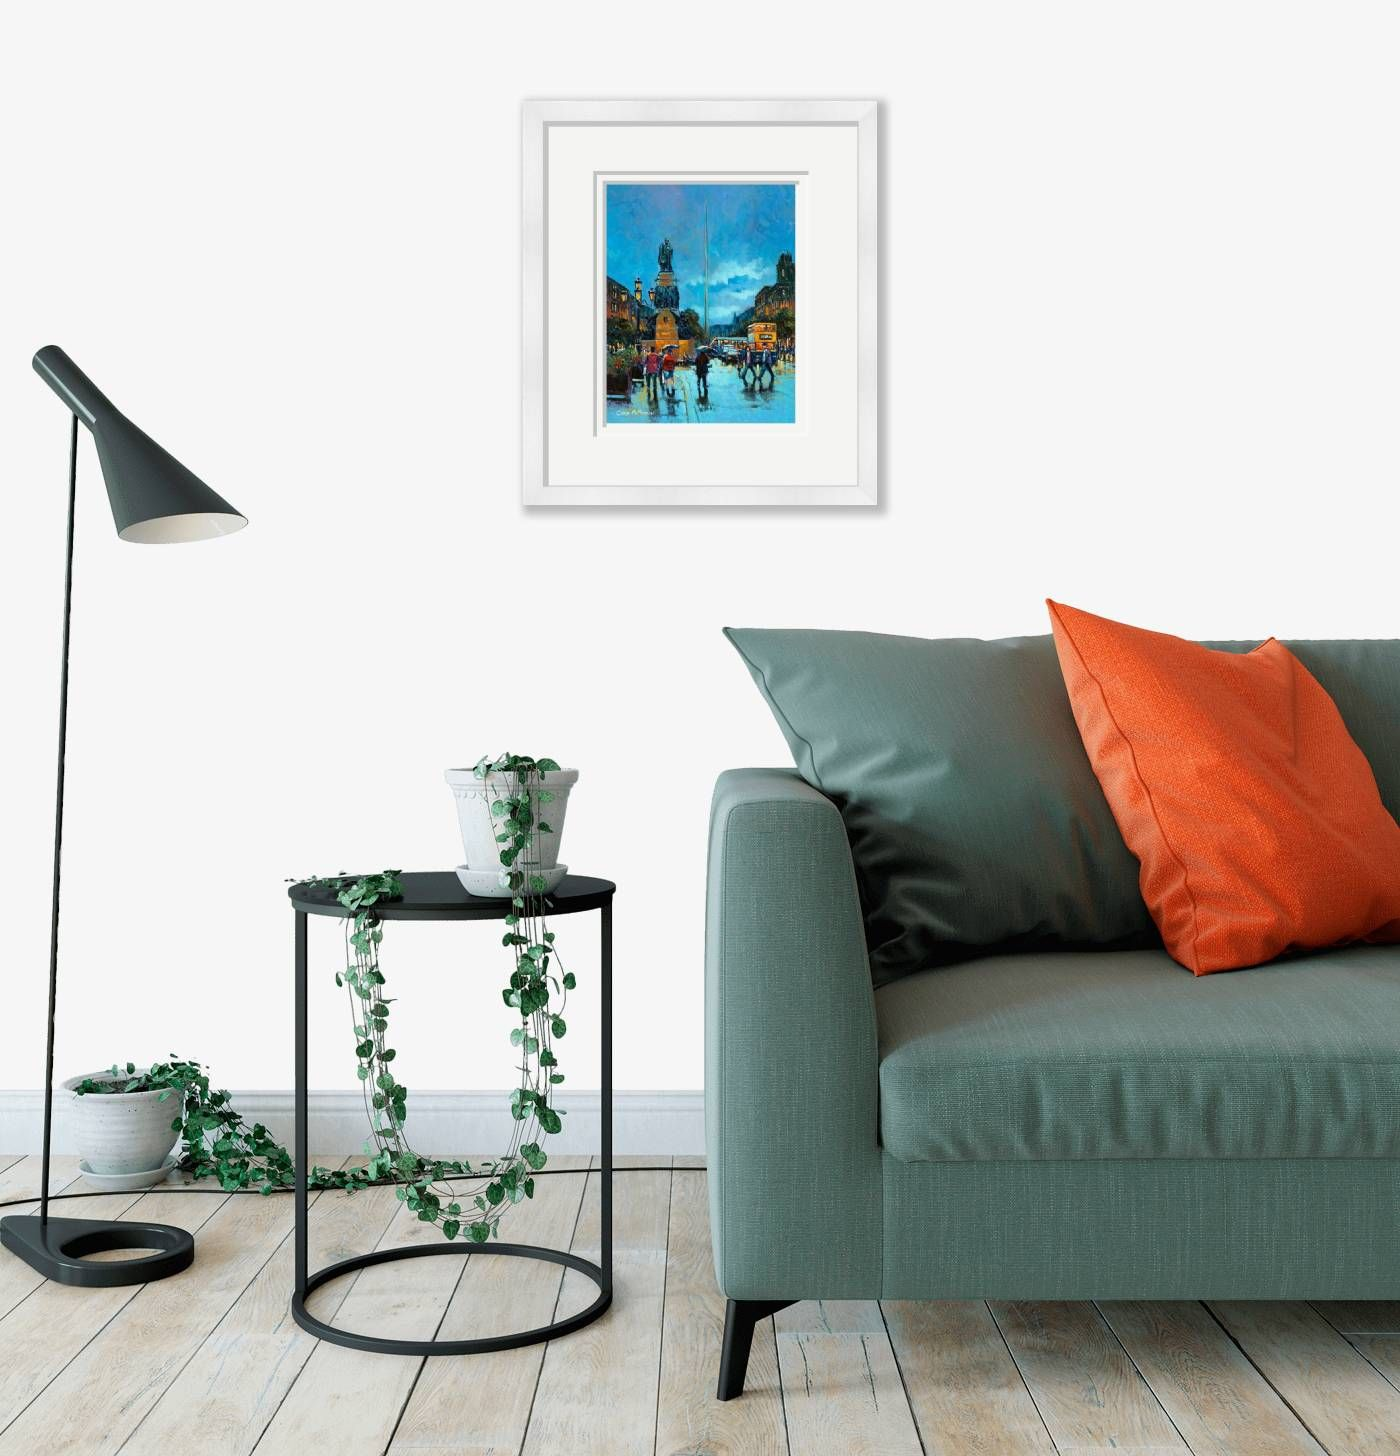 Medium framed - The Spire, O'Connell Street - 449 by Chris McMorrow